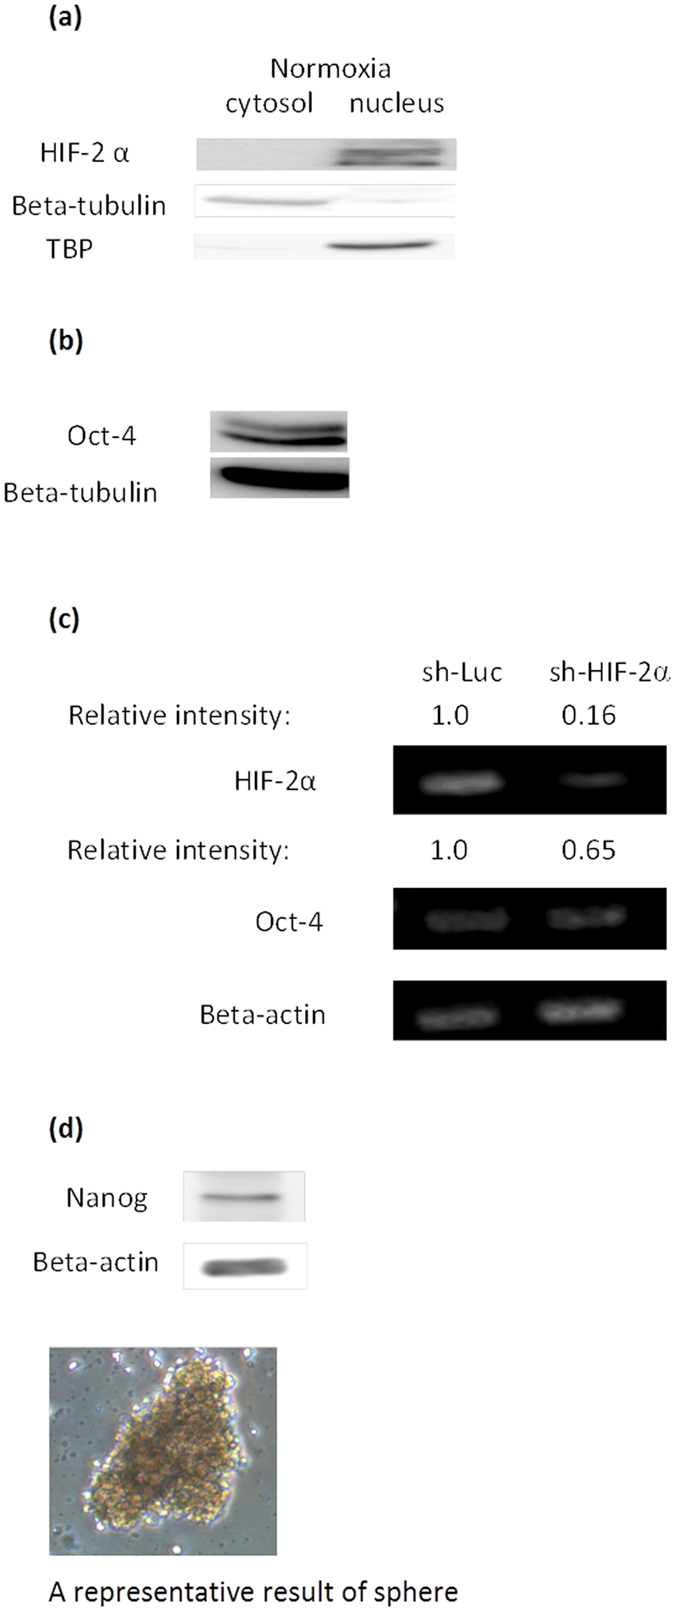 Expression of pluripotency related markers and a sphere culture of BEAS-2B under normoxia. ( a ) HIF-2α expression was detected in the nucleus of BEAS-2B under normoxia by western blotting. Beta tubulin and TATA binding protein (TBP) were used as protein markers for the cytosol and nucleus fraction, respectively. ( b ) Western blotting for Oct-4. ( c ) For knockdown of HIF-2α, BEAS-2B cells were transfected with shRNA targeting HIF-2α and sh-Luc was used as control. ( d ) Western blotting of Nanog and a culture of BEAS-2B containing floating spheres. Representative result from two or three experiments was presented.